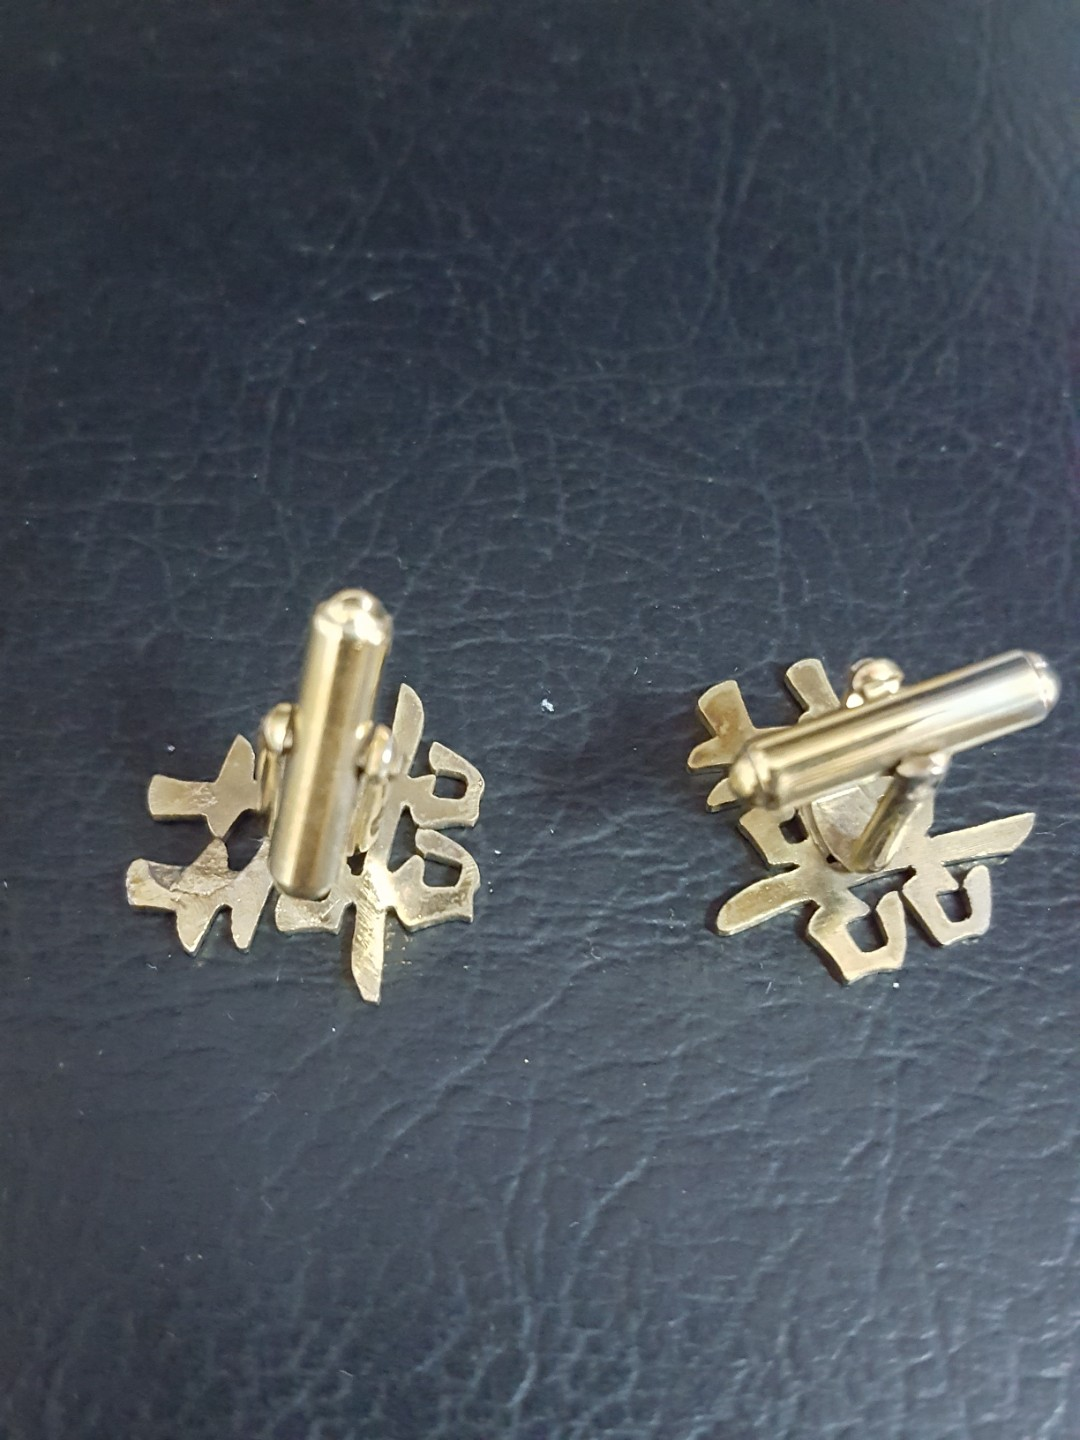 c35a1996913 Gold plated old cufflinks, 1 pair